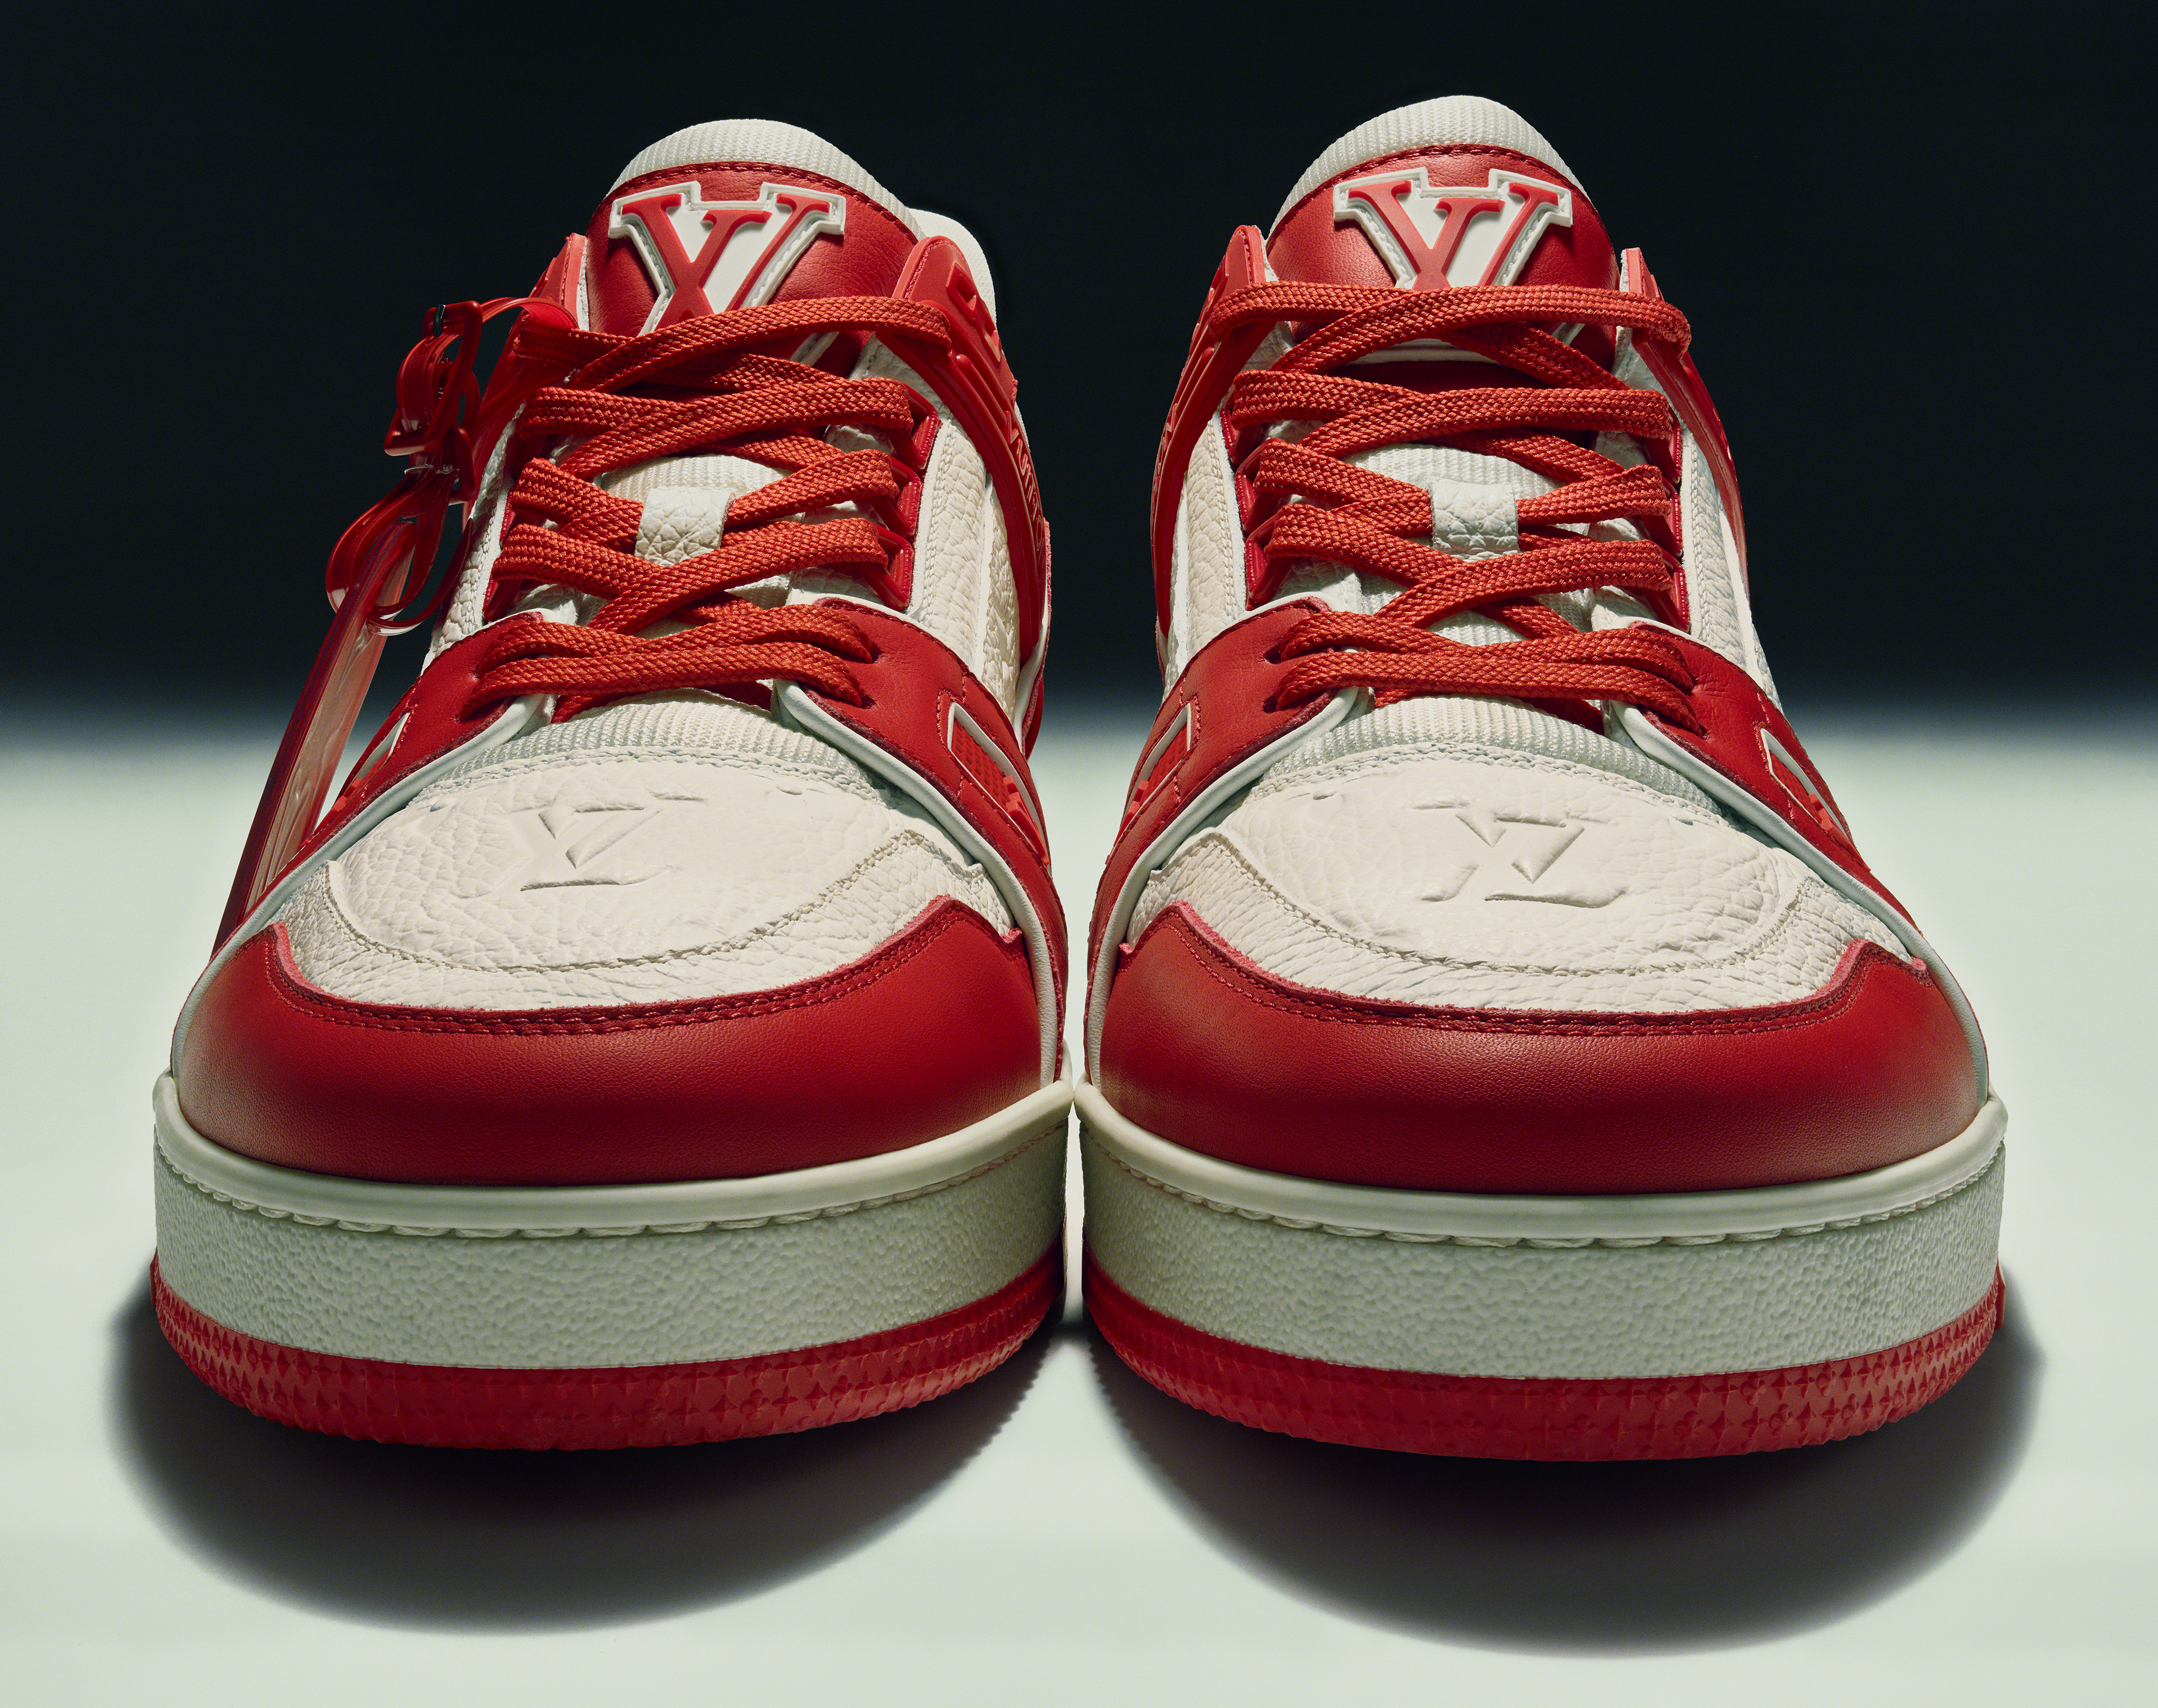 The prototype of the Louis Vuitton I (Red) Trainer to be auctioned at Sotheby's.